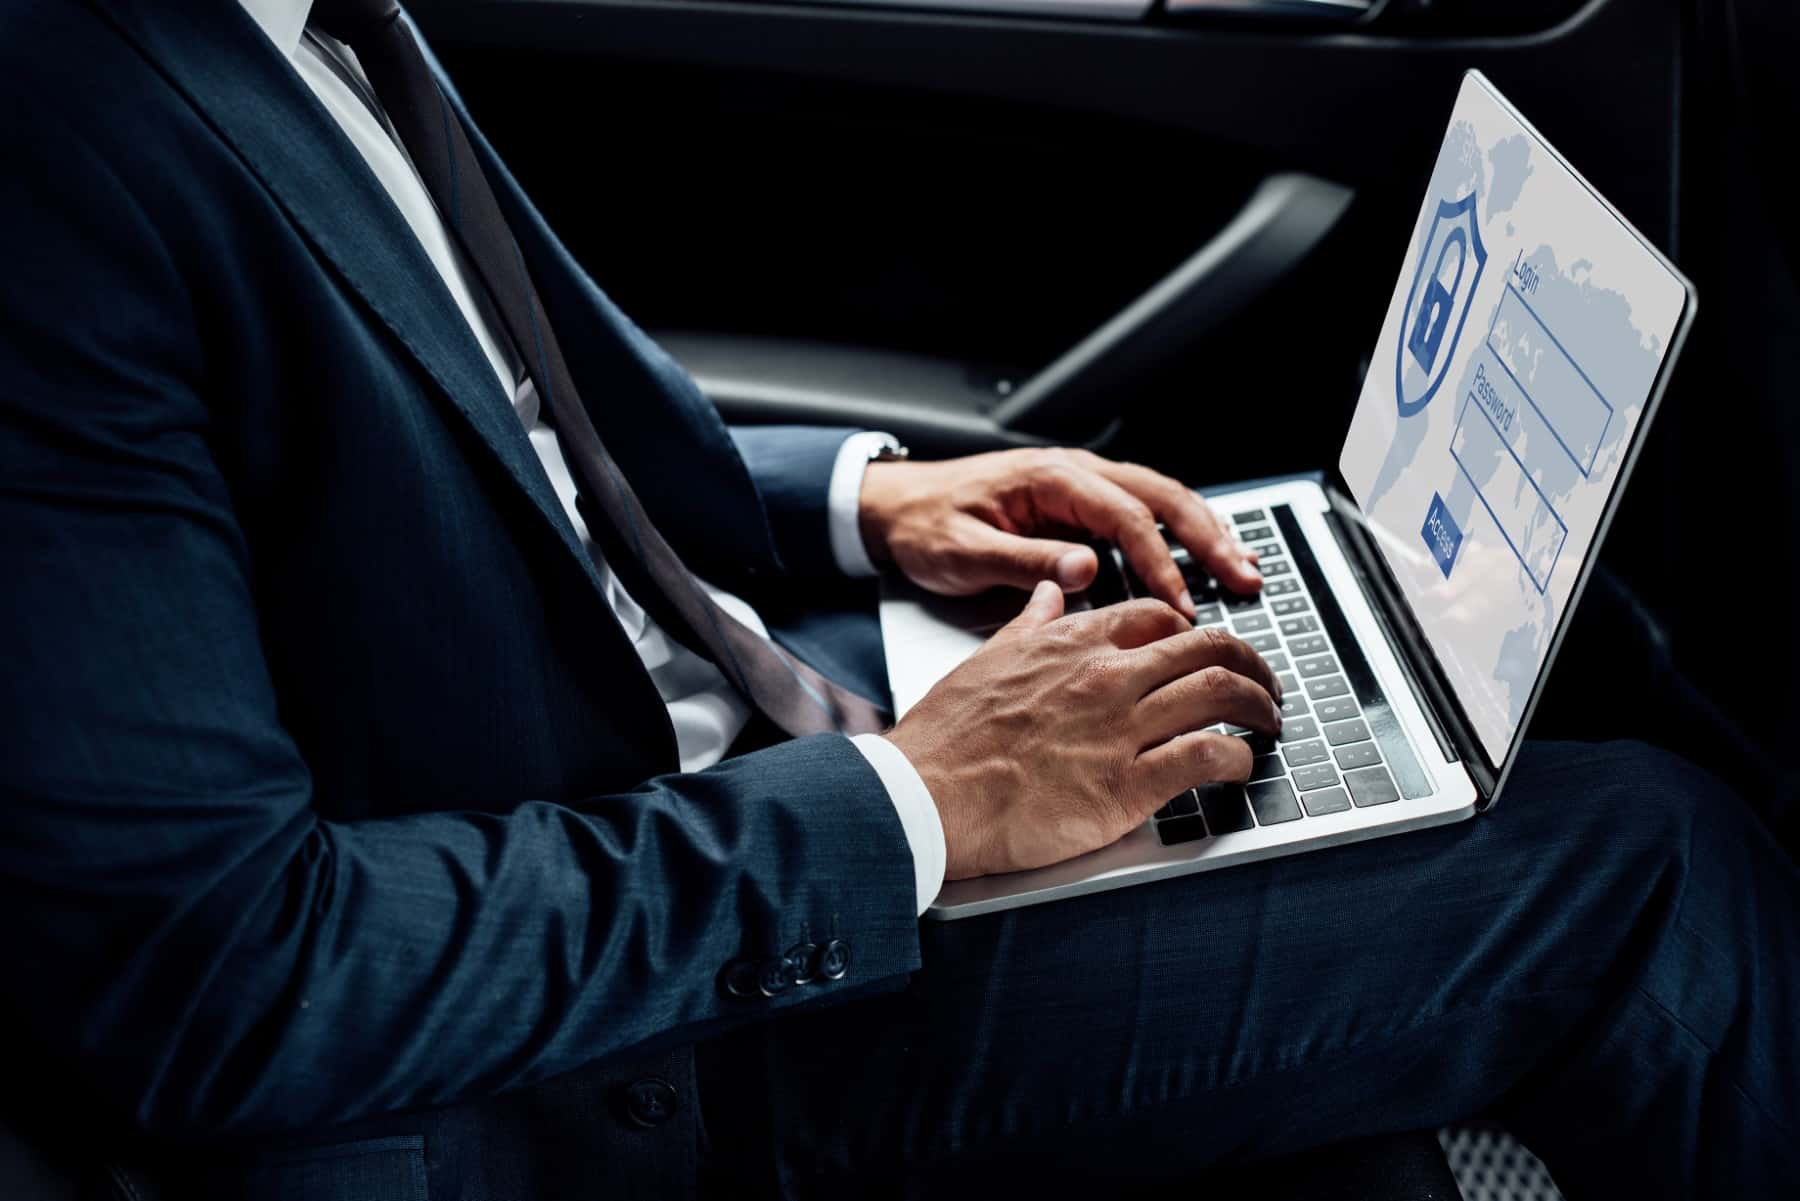 partial view of african american businessman using laptop with internet security illustration in car